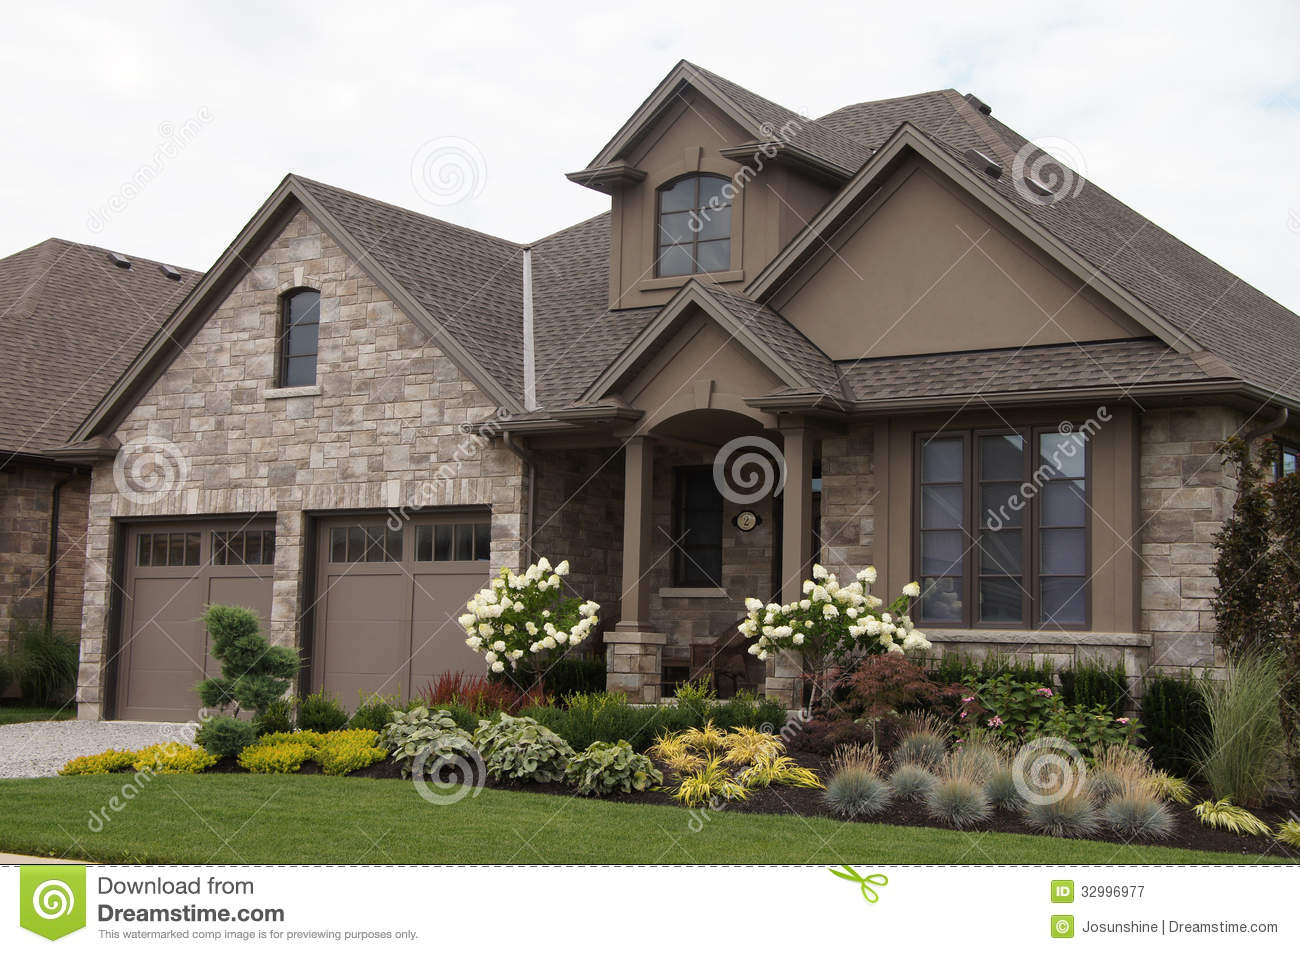 Stucco stone house pretty garden stock image image of for Stone and stucco house plans